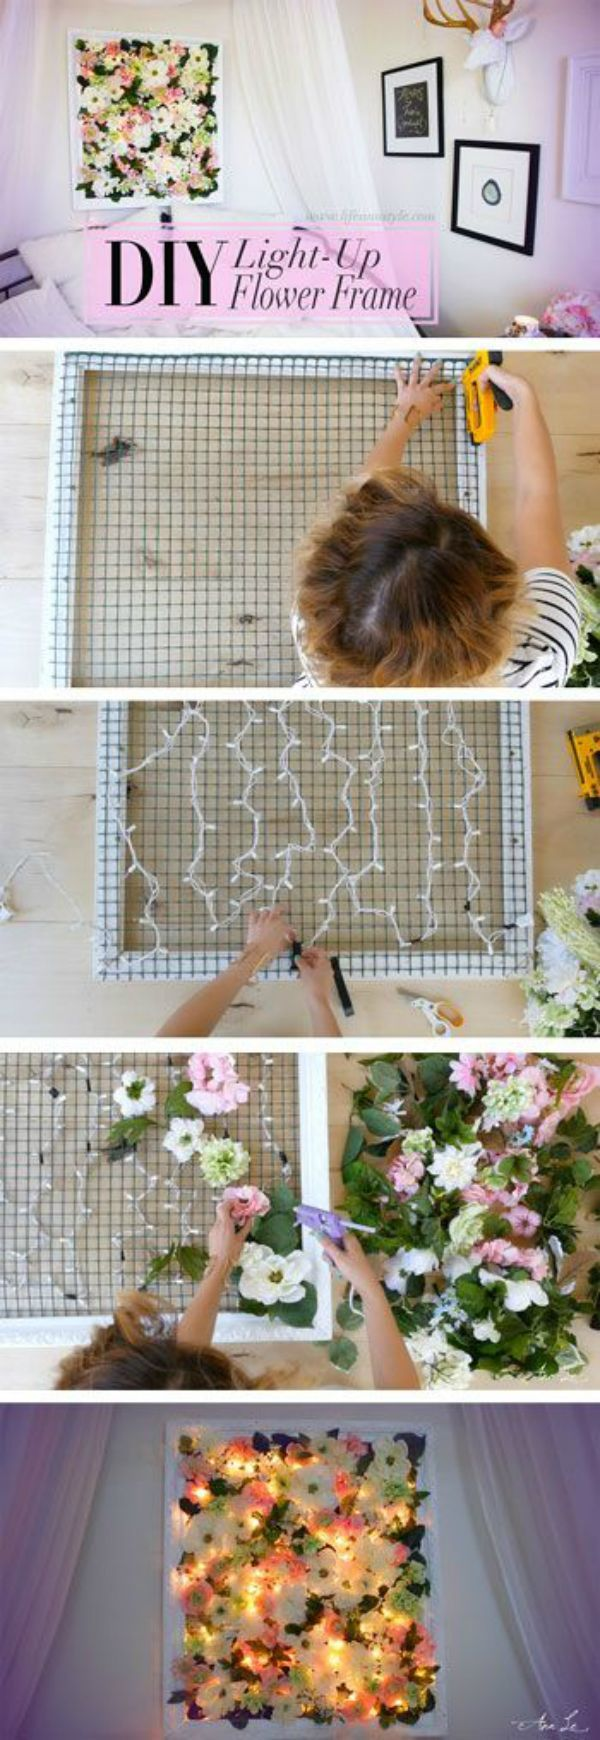 Diy bedroom decor ideas pinterest - Cheap Bedroom Decor Ideas Diy Light Up Flower Frame Http